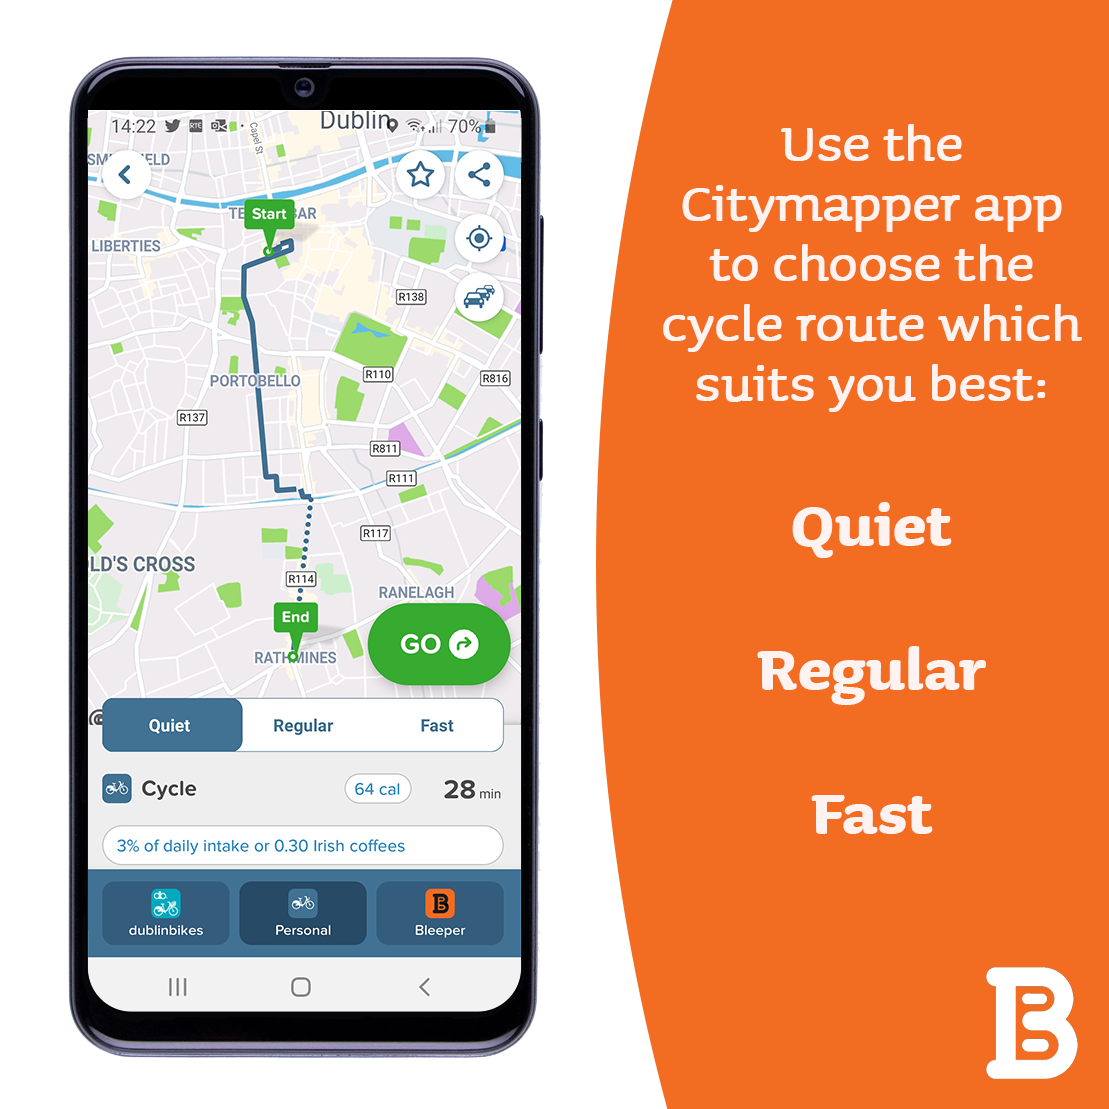 A screenshot of the Citymapper app shows a map of Dublin and the directions for a journey by bicycle. The app also displays the Bleeper icon which enables users to find nearby Bleeper bikes to hire.